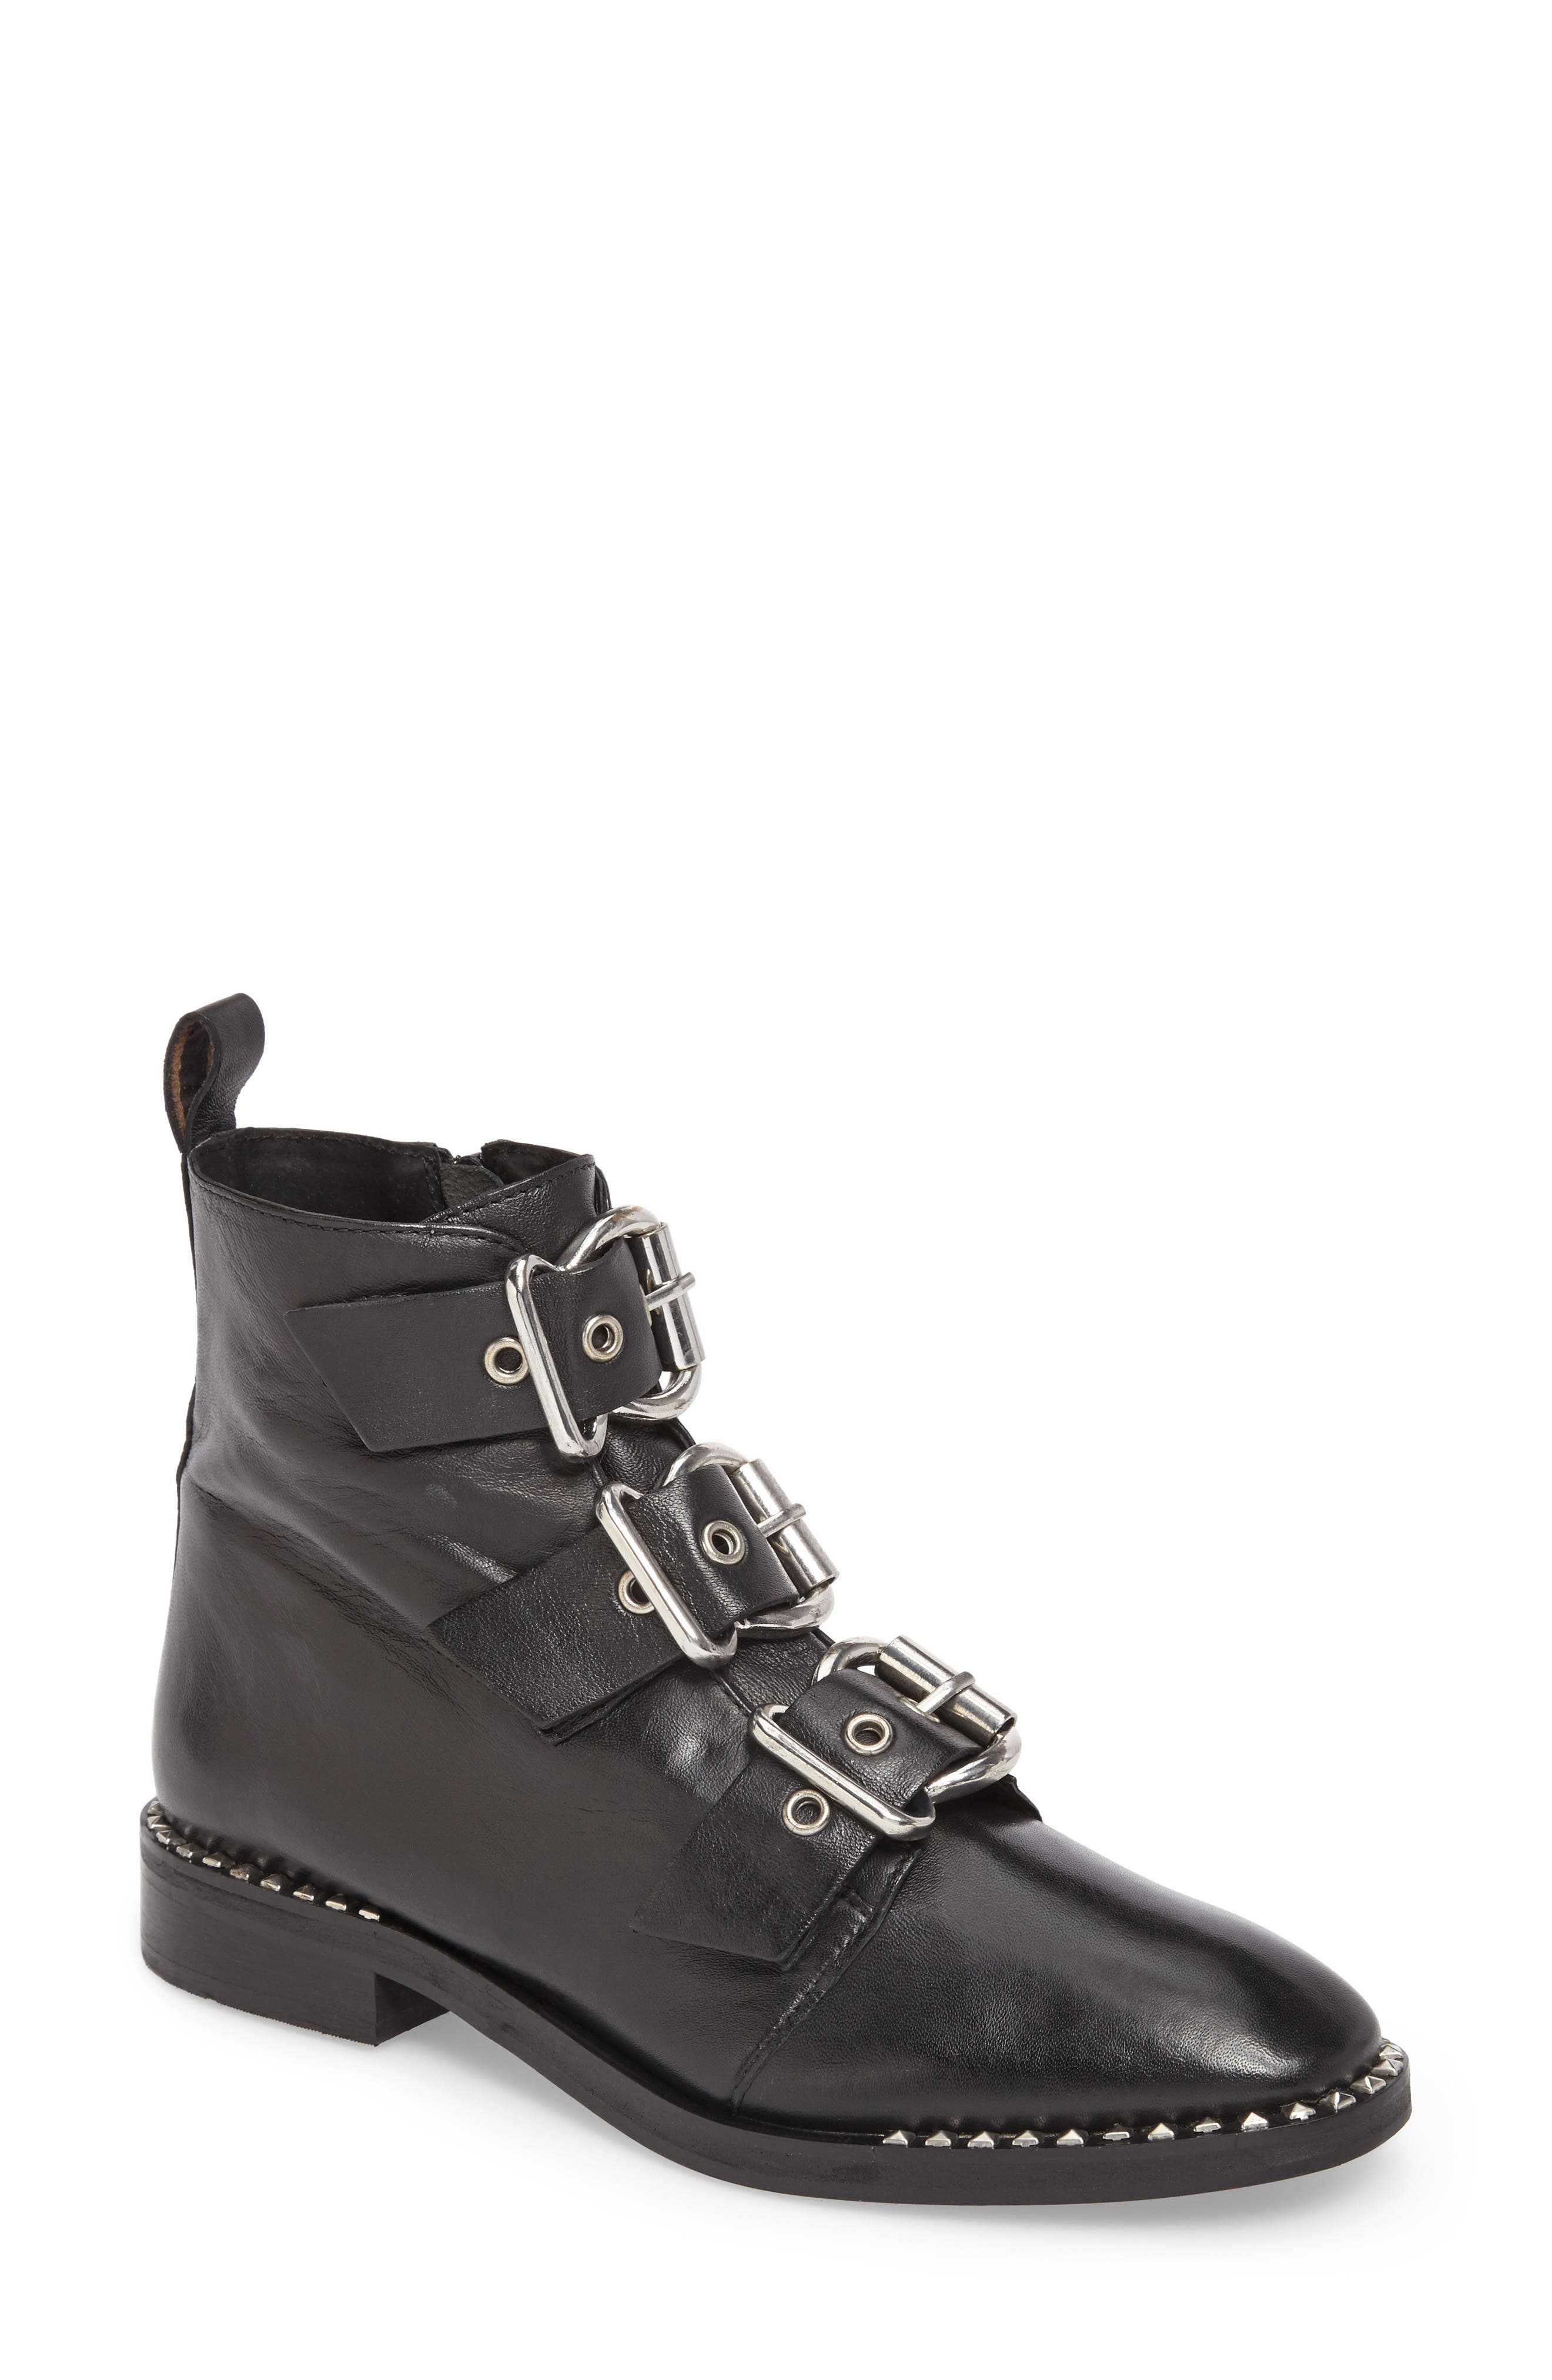 Alternate Image 1 Selected - Topshop Alfie Buckle Ankle Boot (Women)